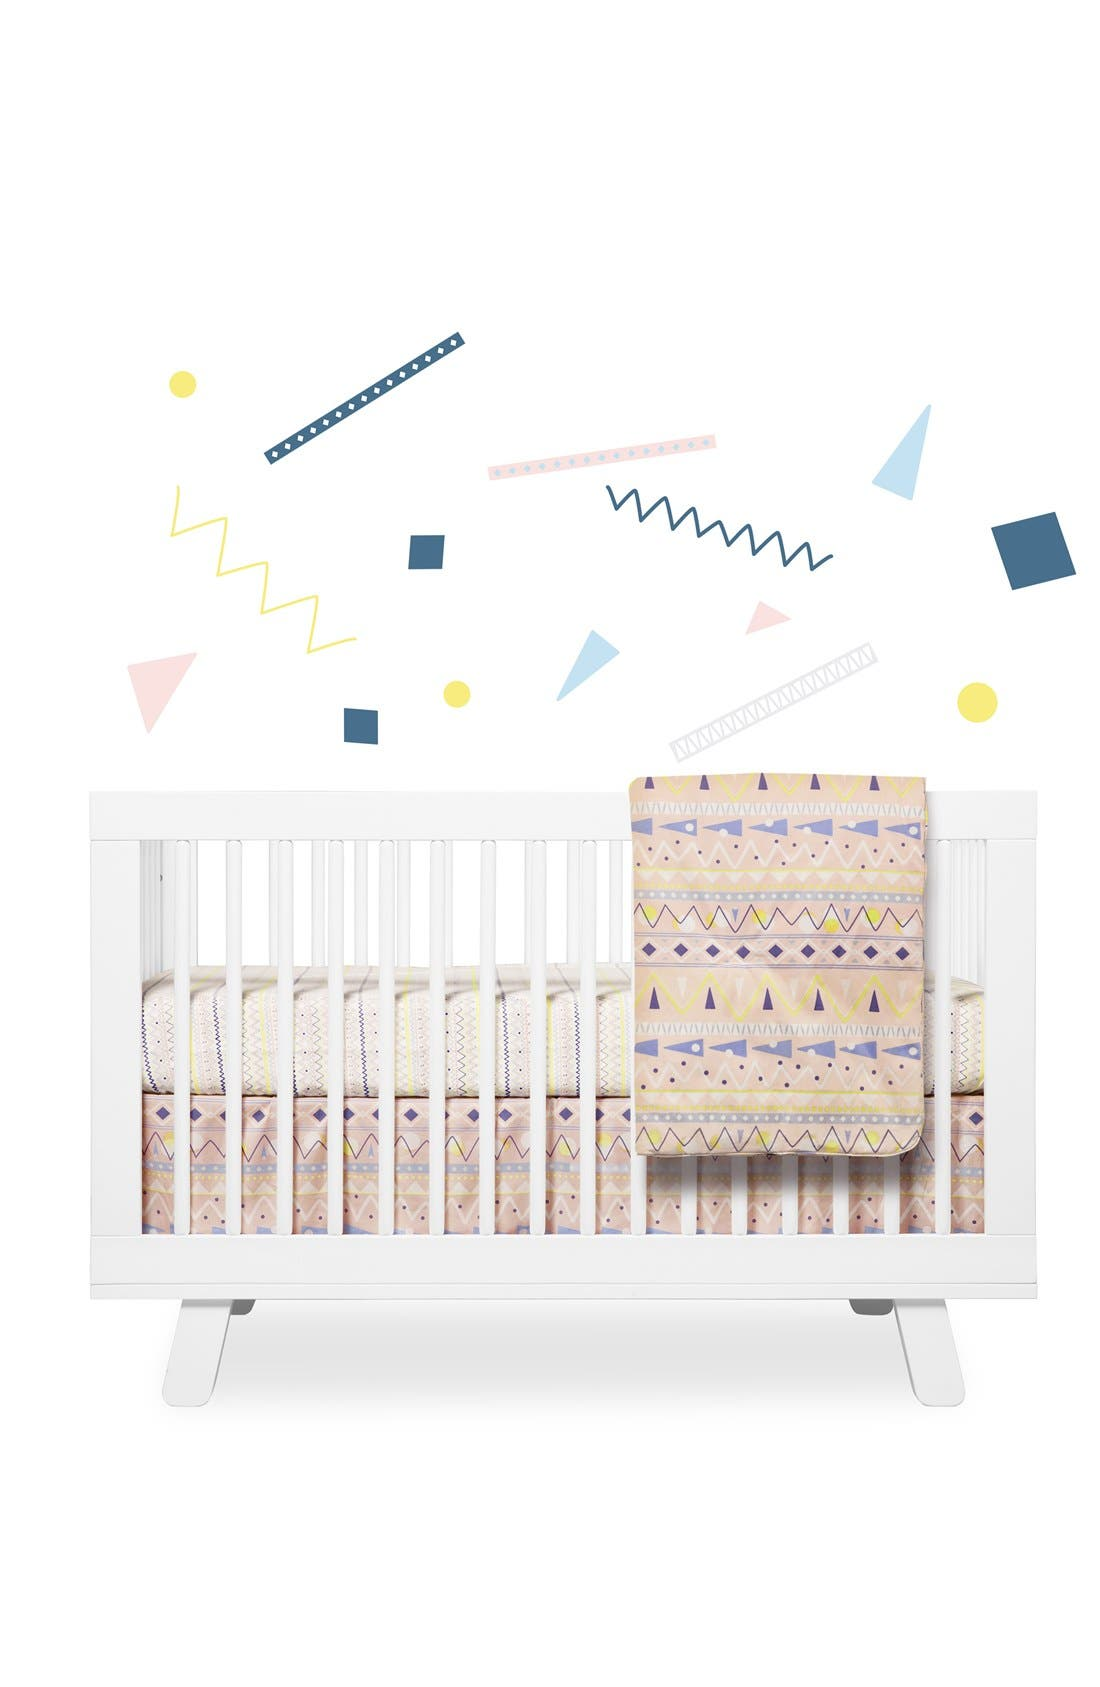 'Desert' Crib Sheet, Crib Skirt, Changing Pad Cover, Play Blanket, Stroller Blanket & Wall Decals,                             Main thumbnail 1, color,                             OFF WHITE